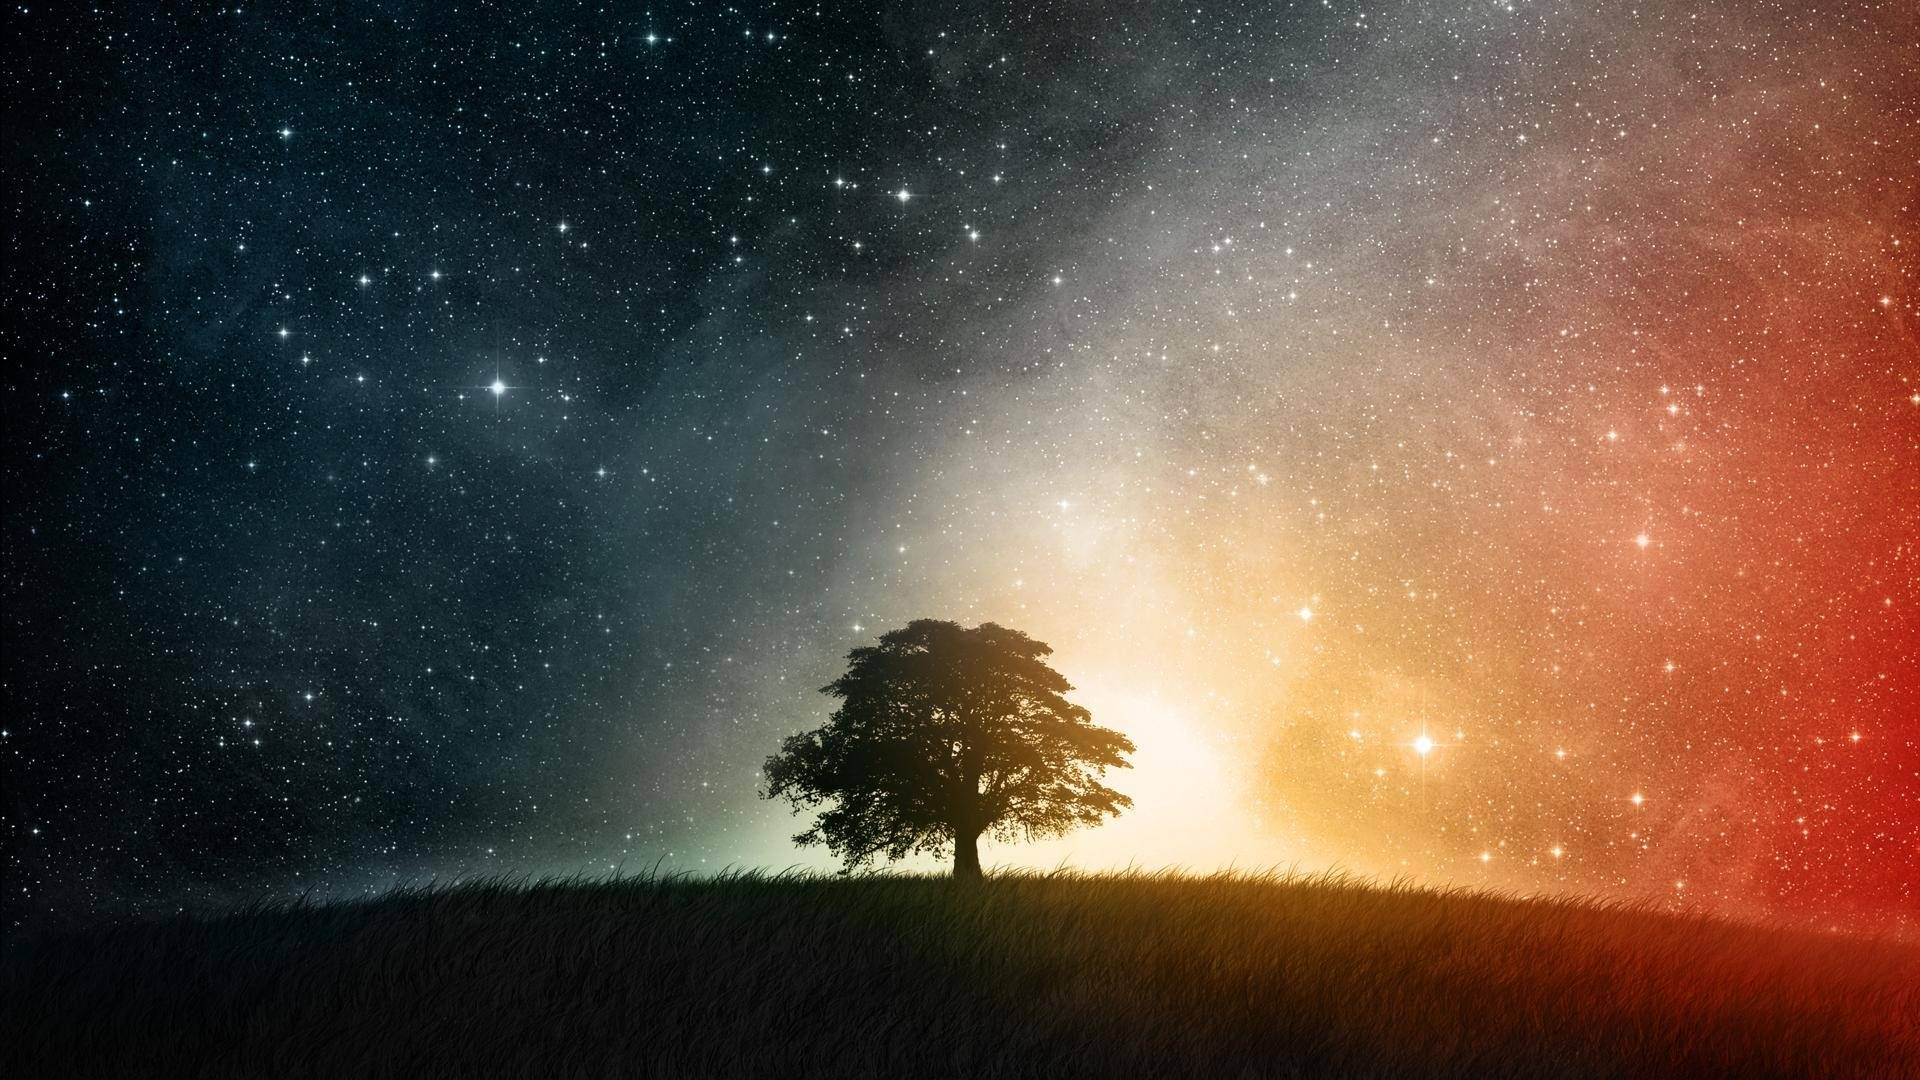 night sky stars wallpapers - wallpaper cave   adorable wallpapers